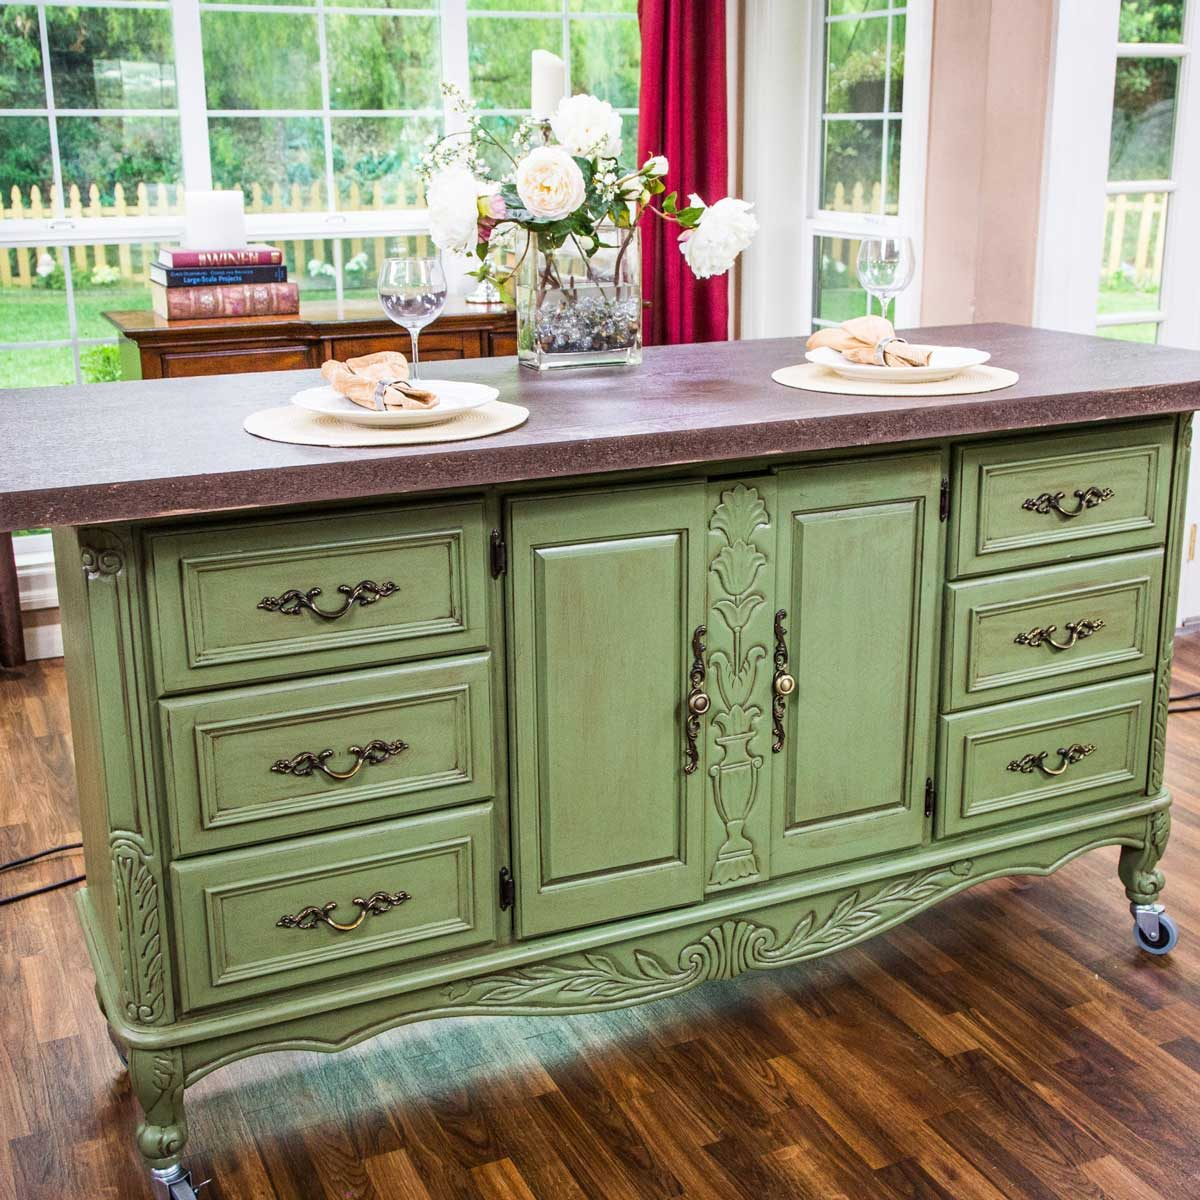 Sturdy Seating Diy Kitchen Island Dresserisland Kitchen Diy Kitchen Islands Family Handyman Diy Large Kitchen Island Table kitchen Diy Kitchen Island With Seating